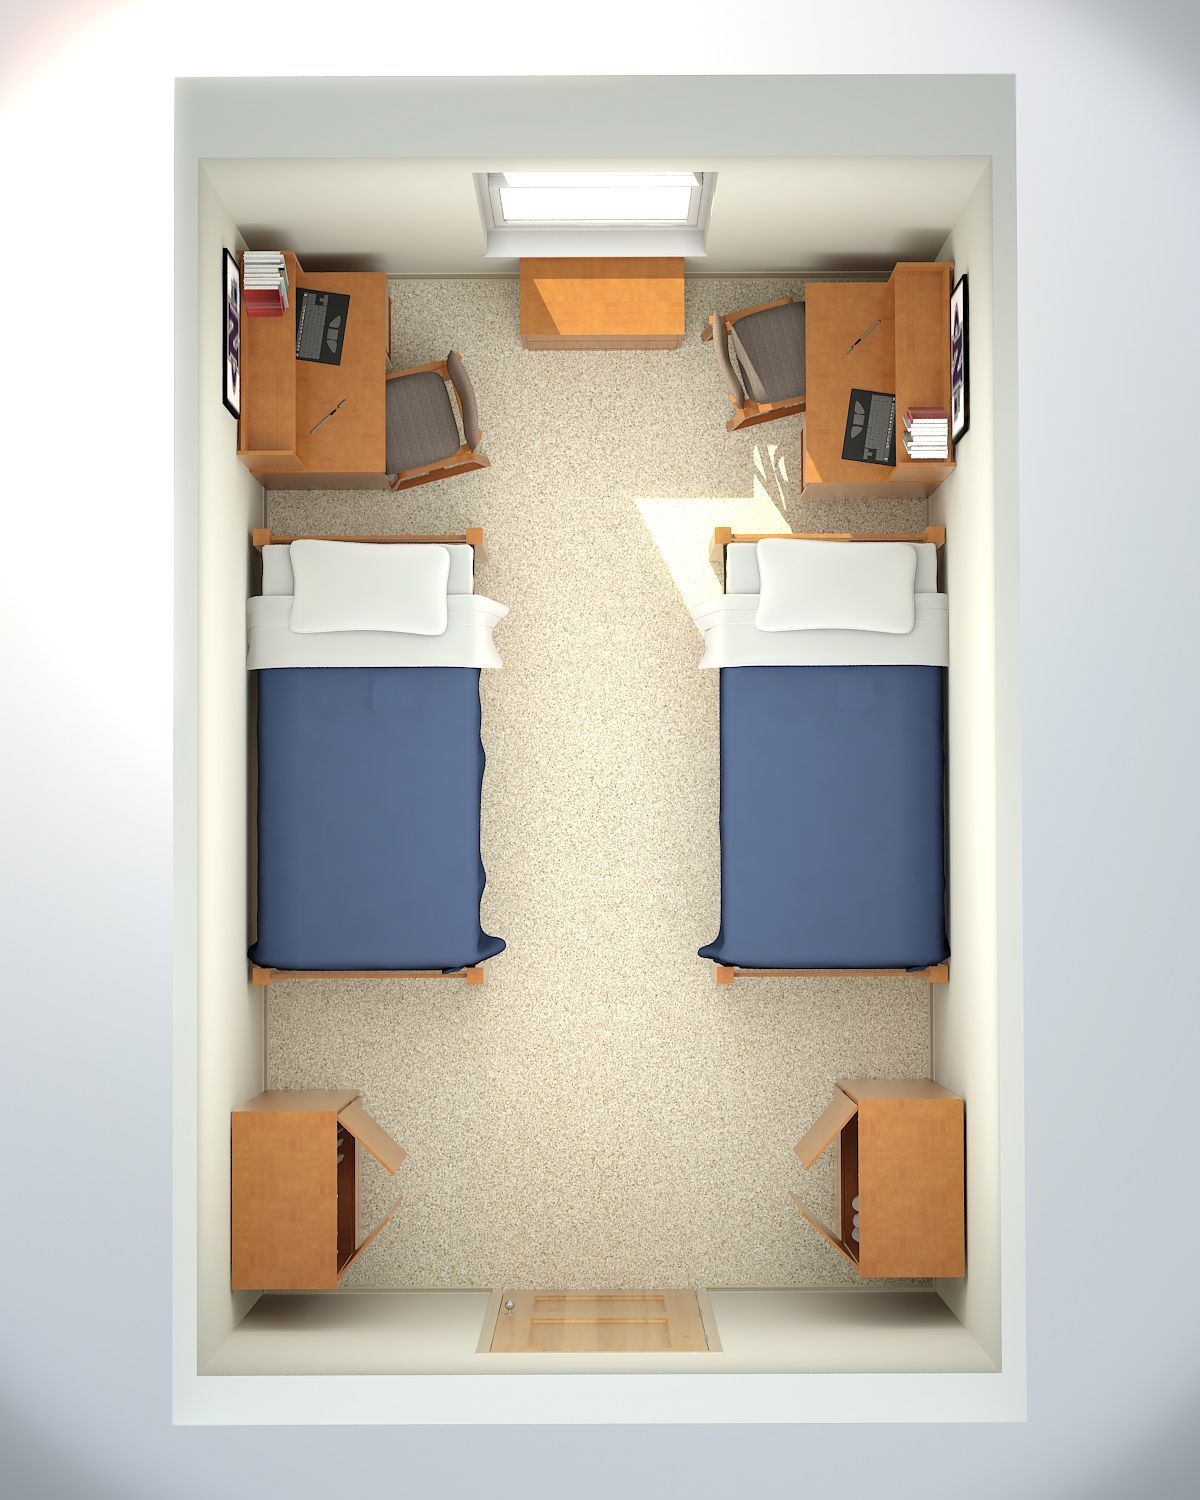 Dorm Room Layouts